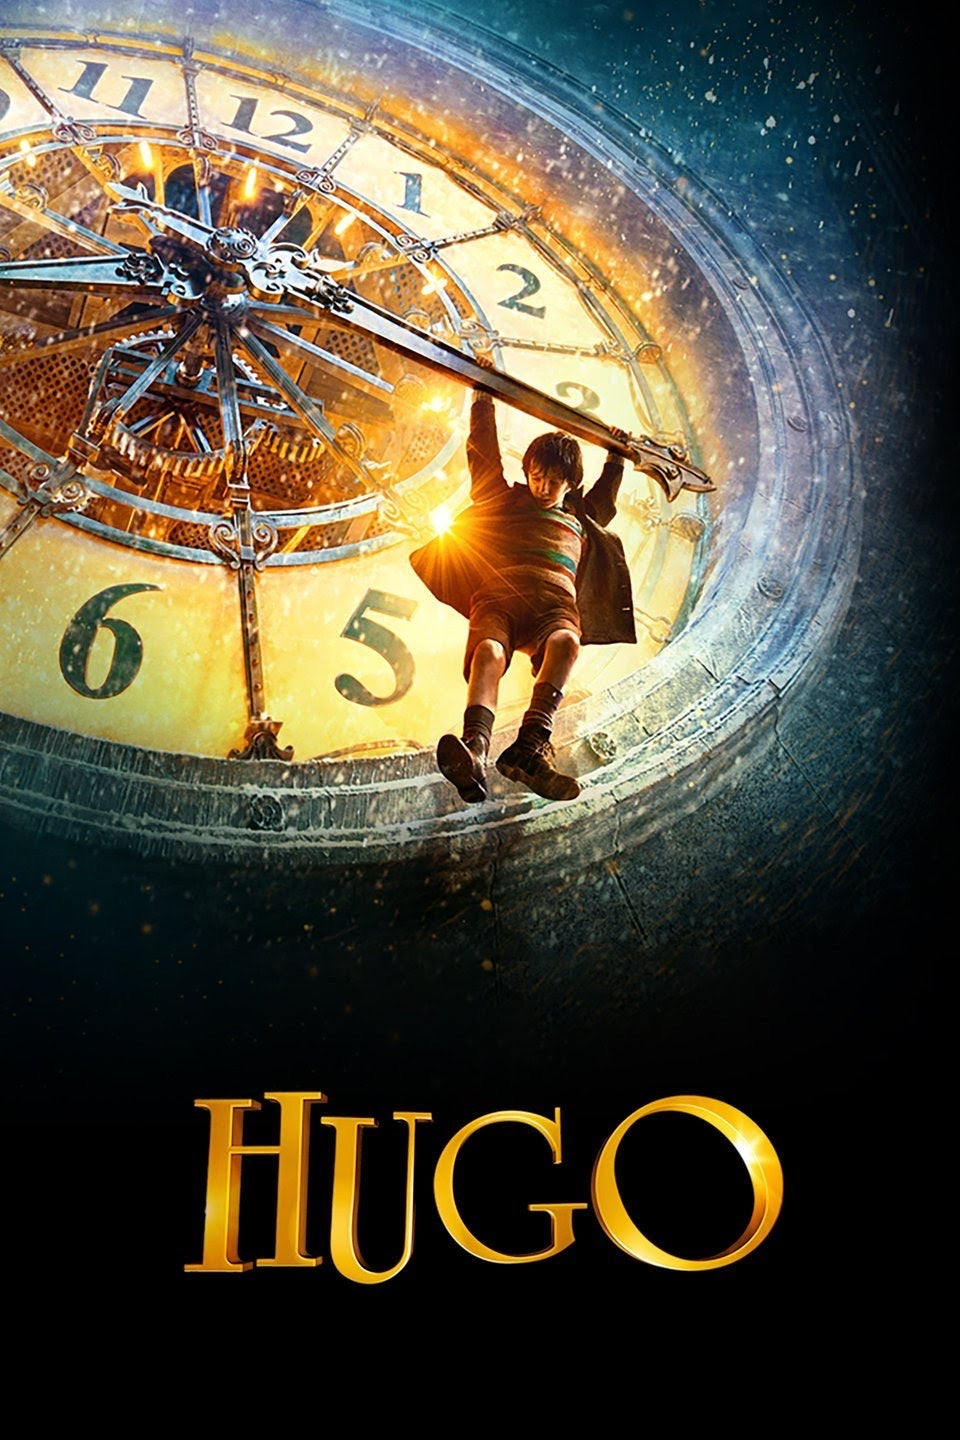 Hugo (2011) Vudu or Movies Anywhere HD redemption only